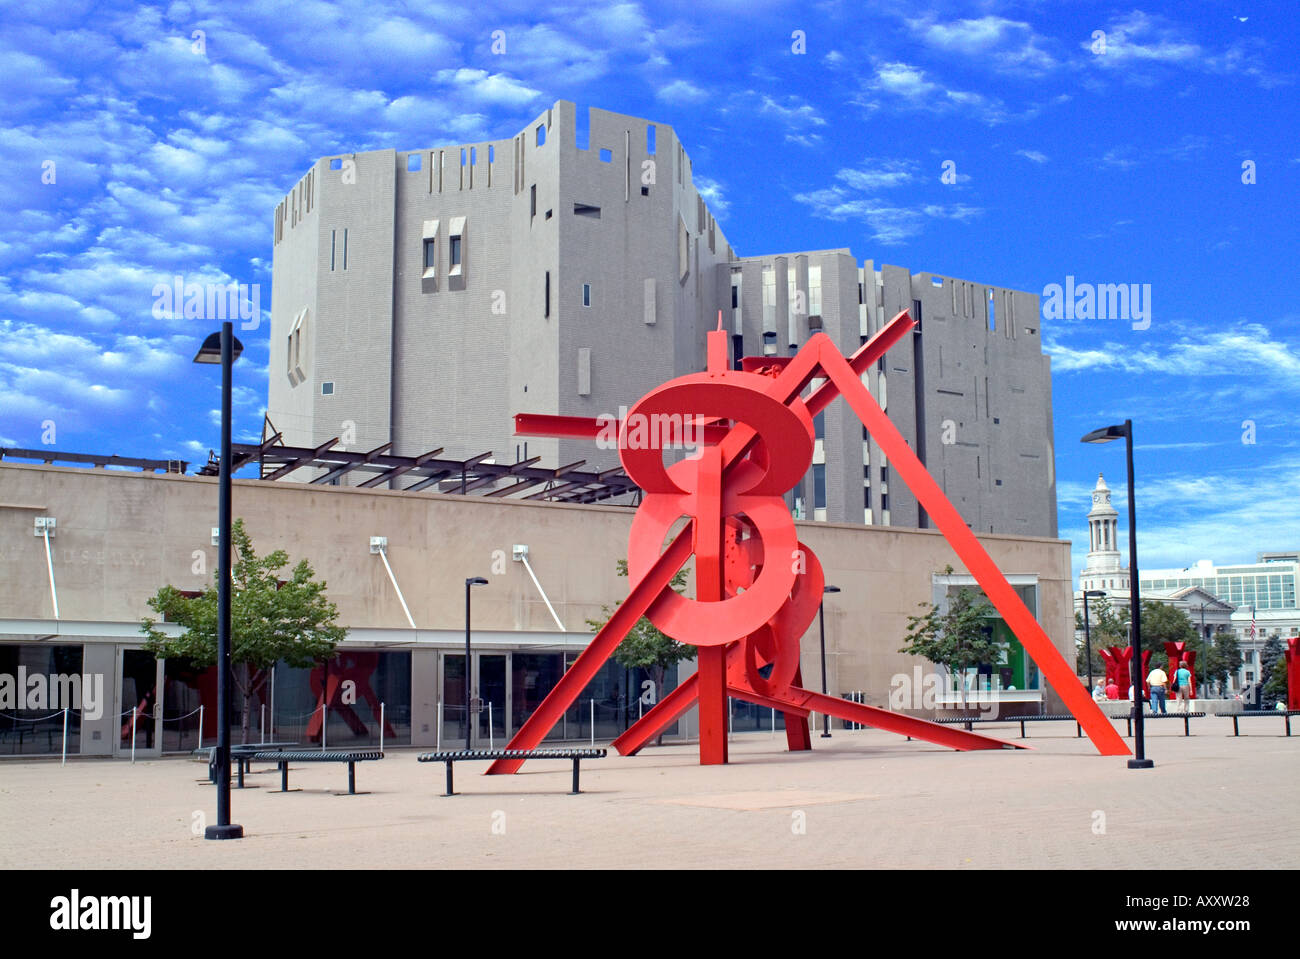 Outdoor Red Twisted Sculpture Denver Art Museum CO USA Stock Photo - Number of art museums in usa